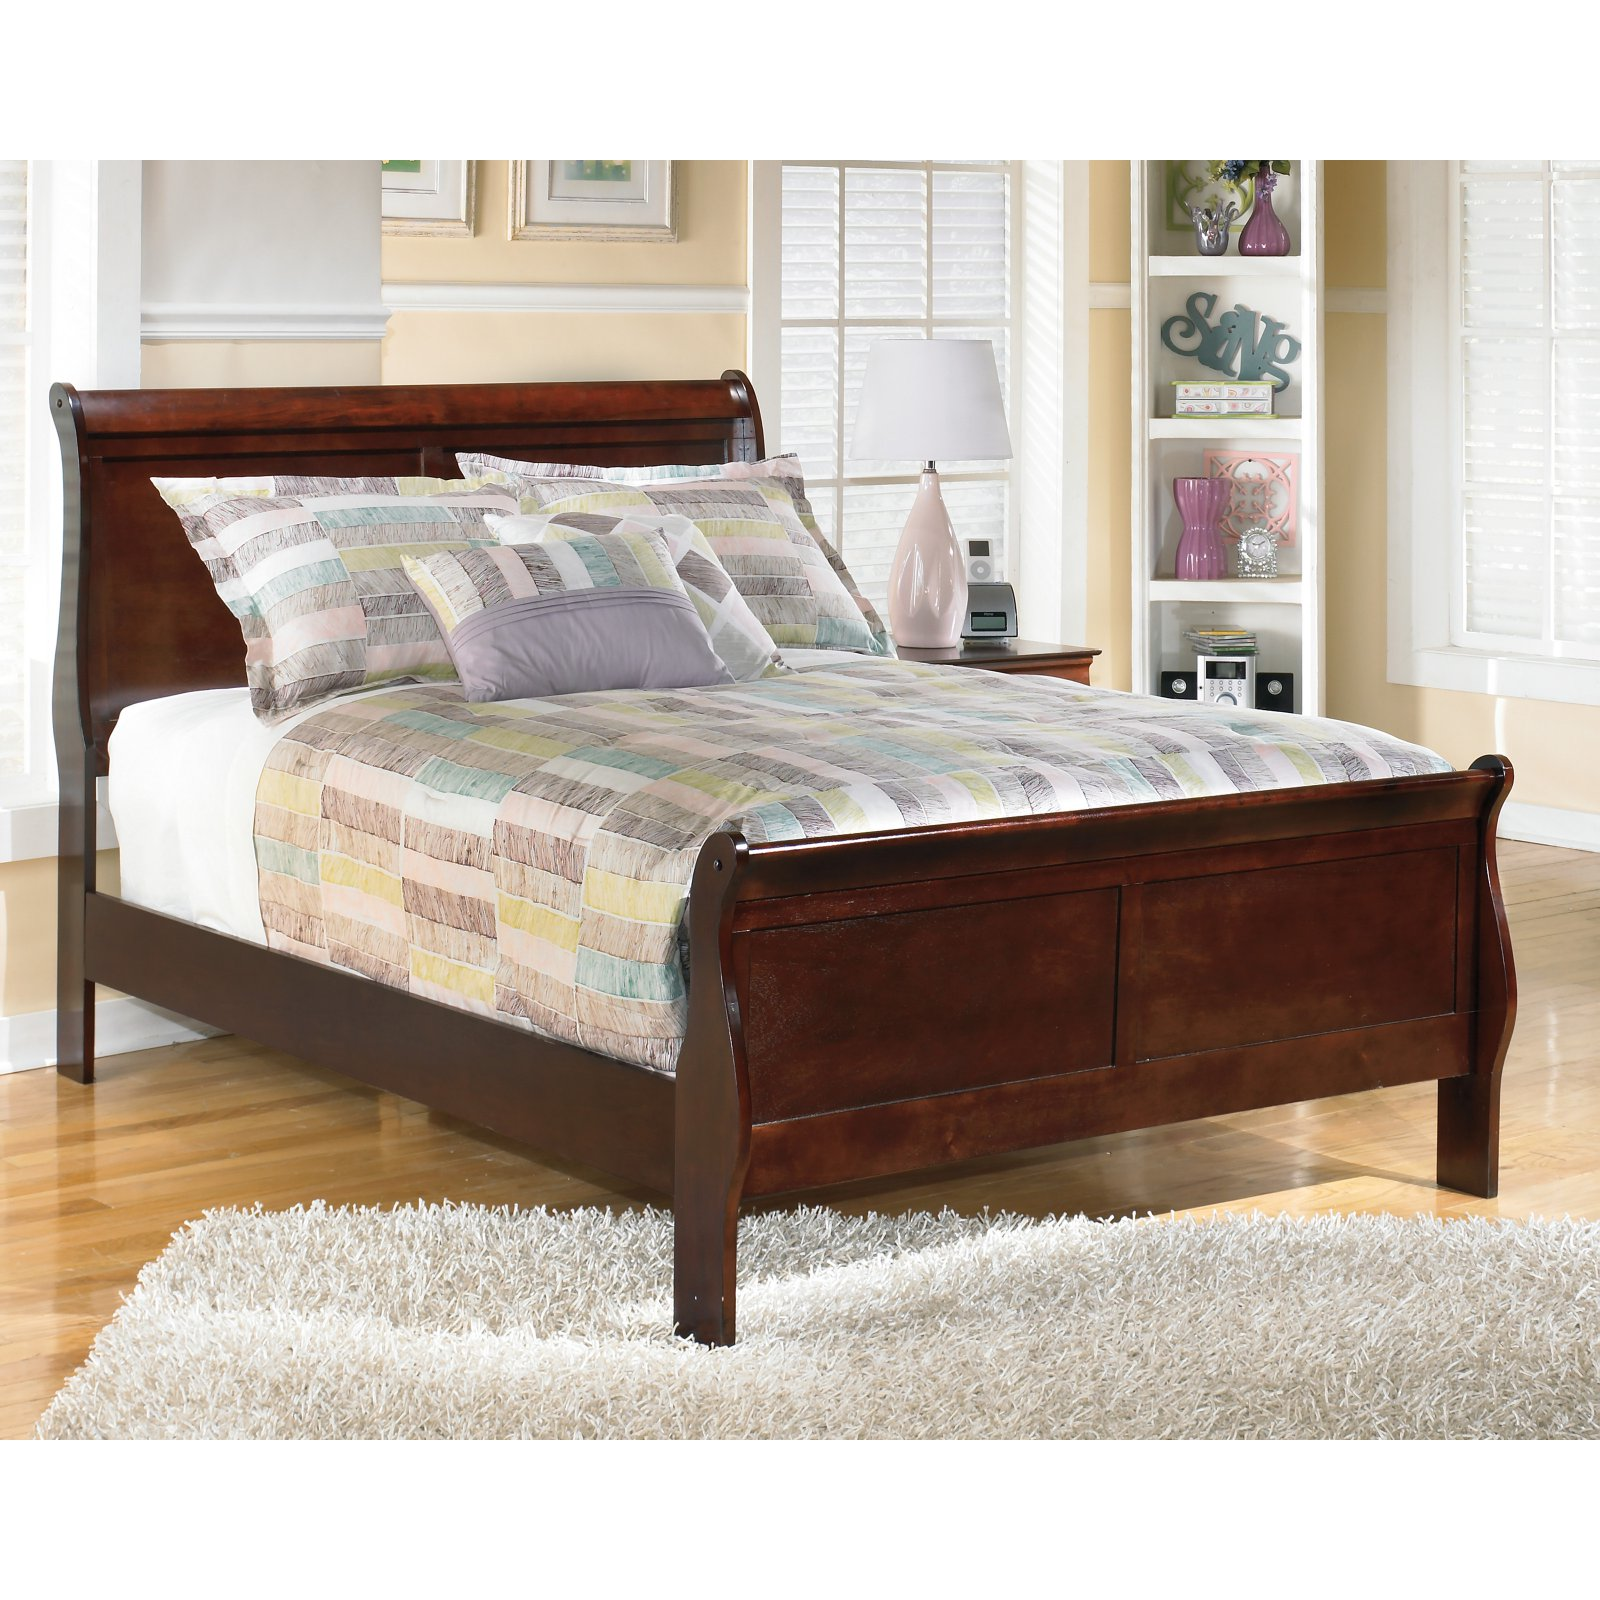 Signature Design by Ashley Alisdair Sleigh Bed